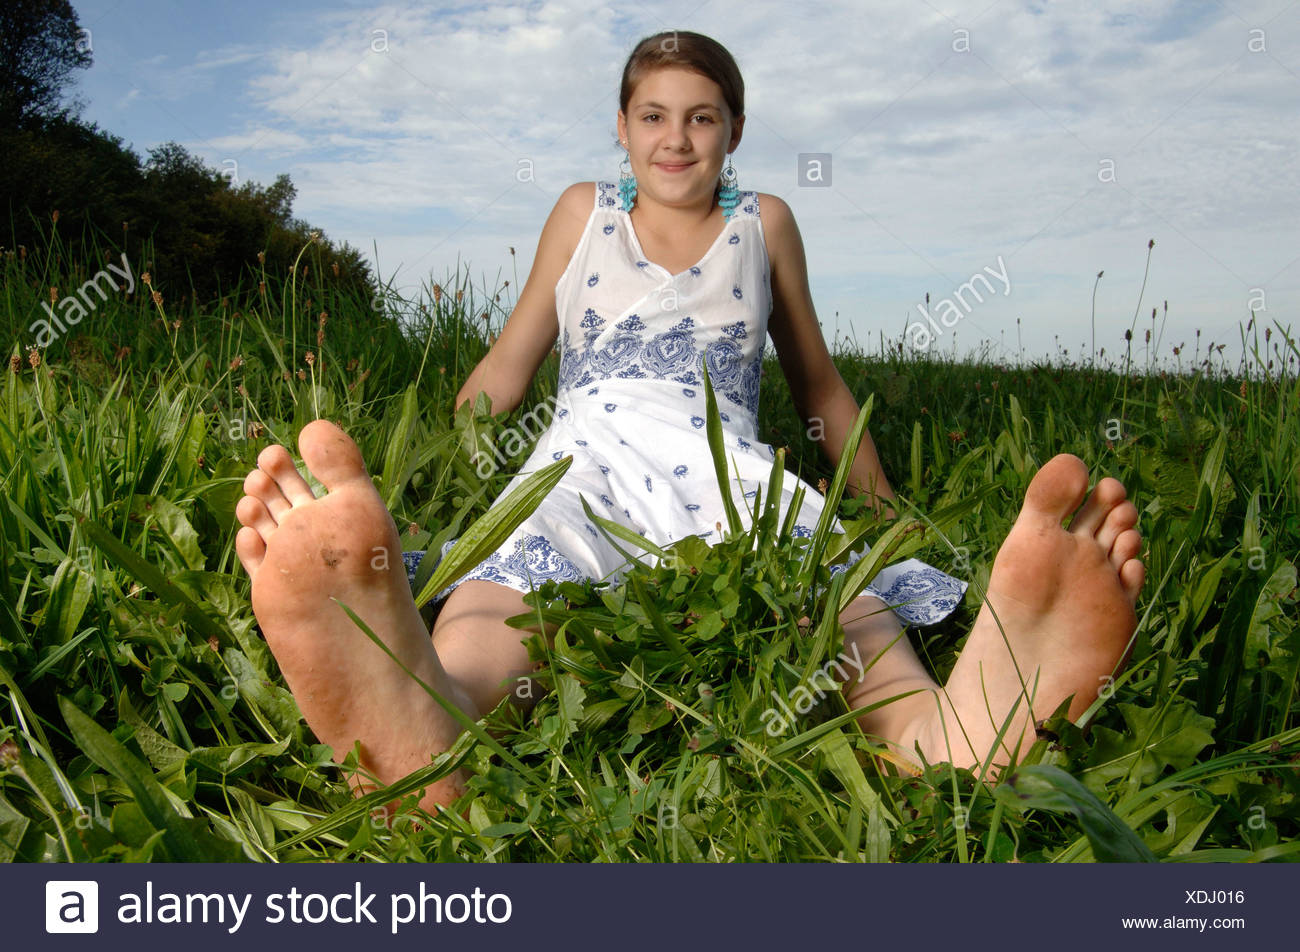 Girls bare feet pictures